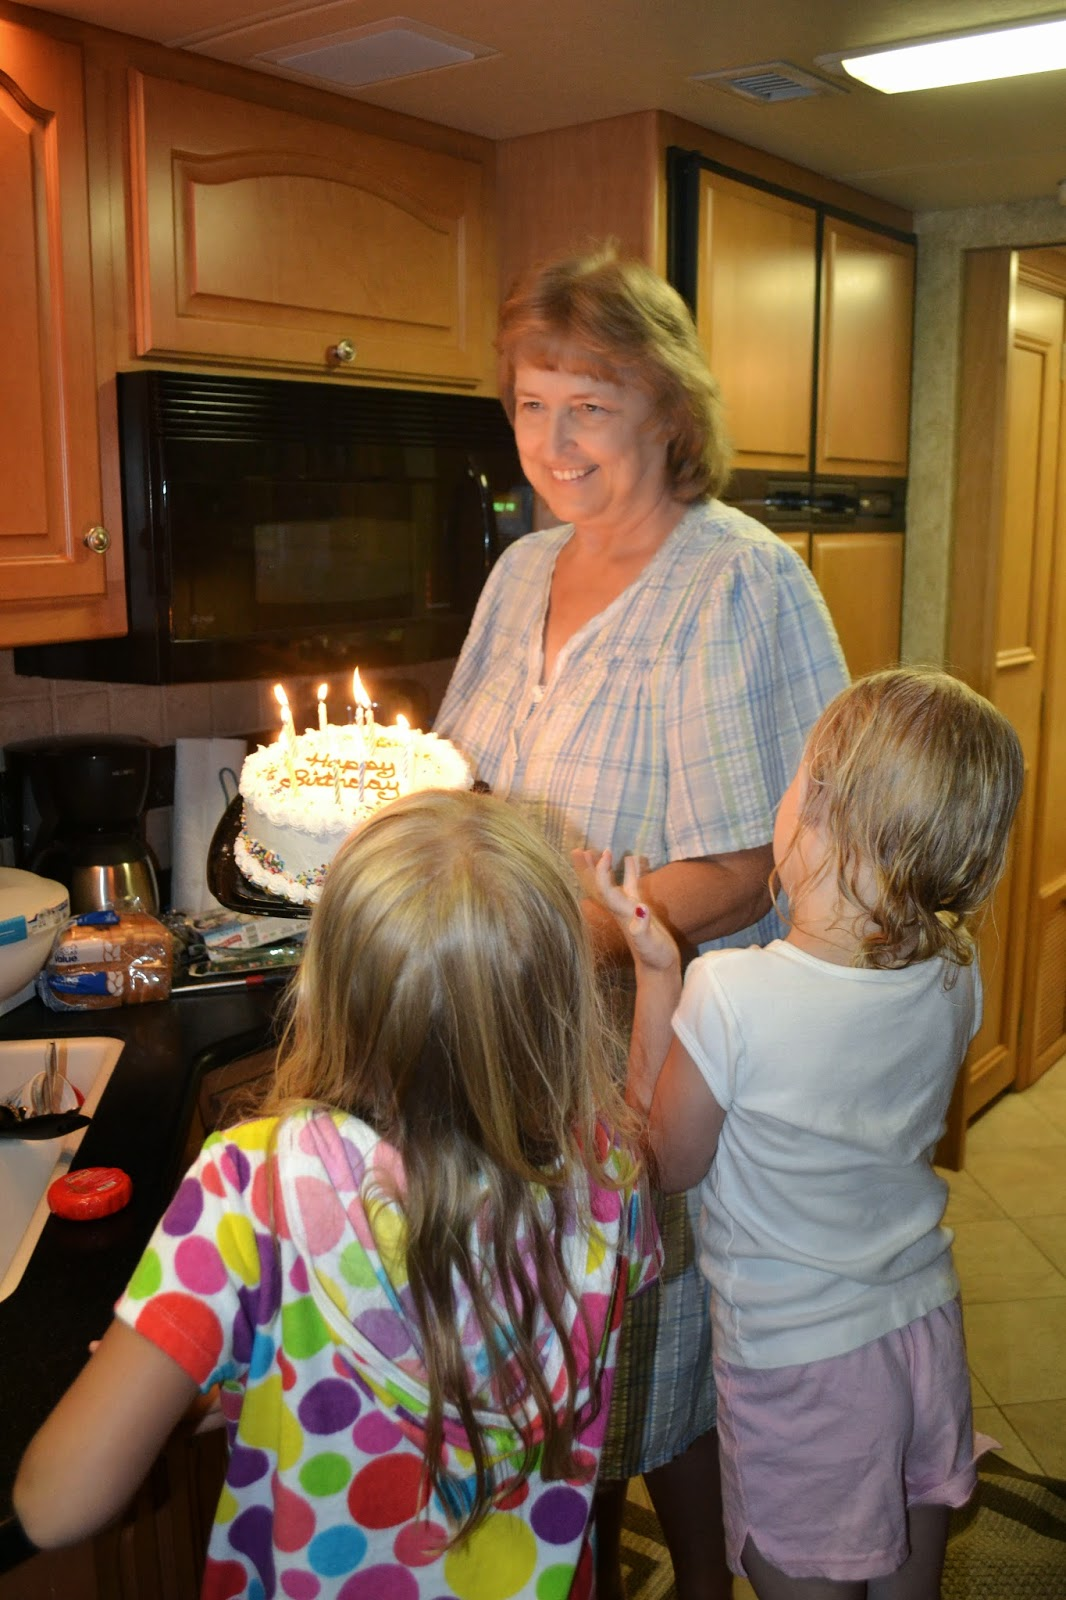 Myrtle Beach Birthday in the Camper